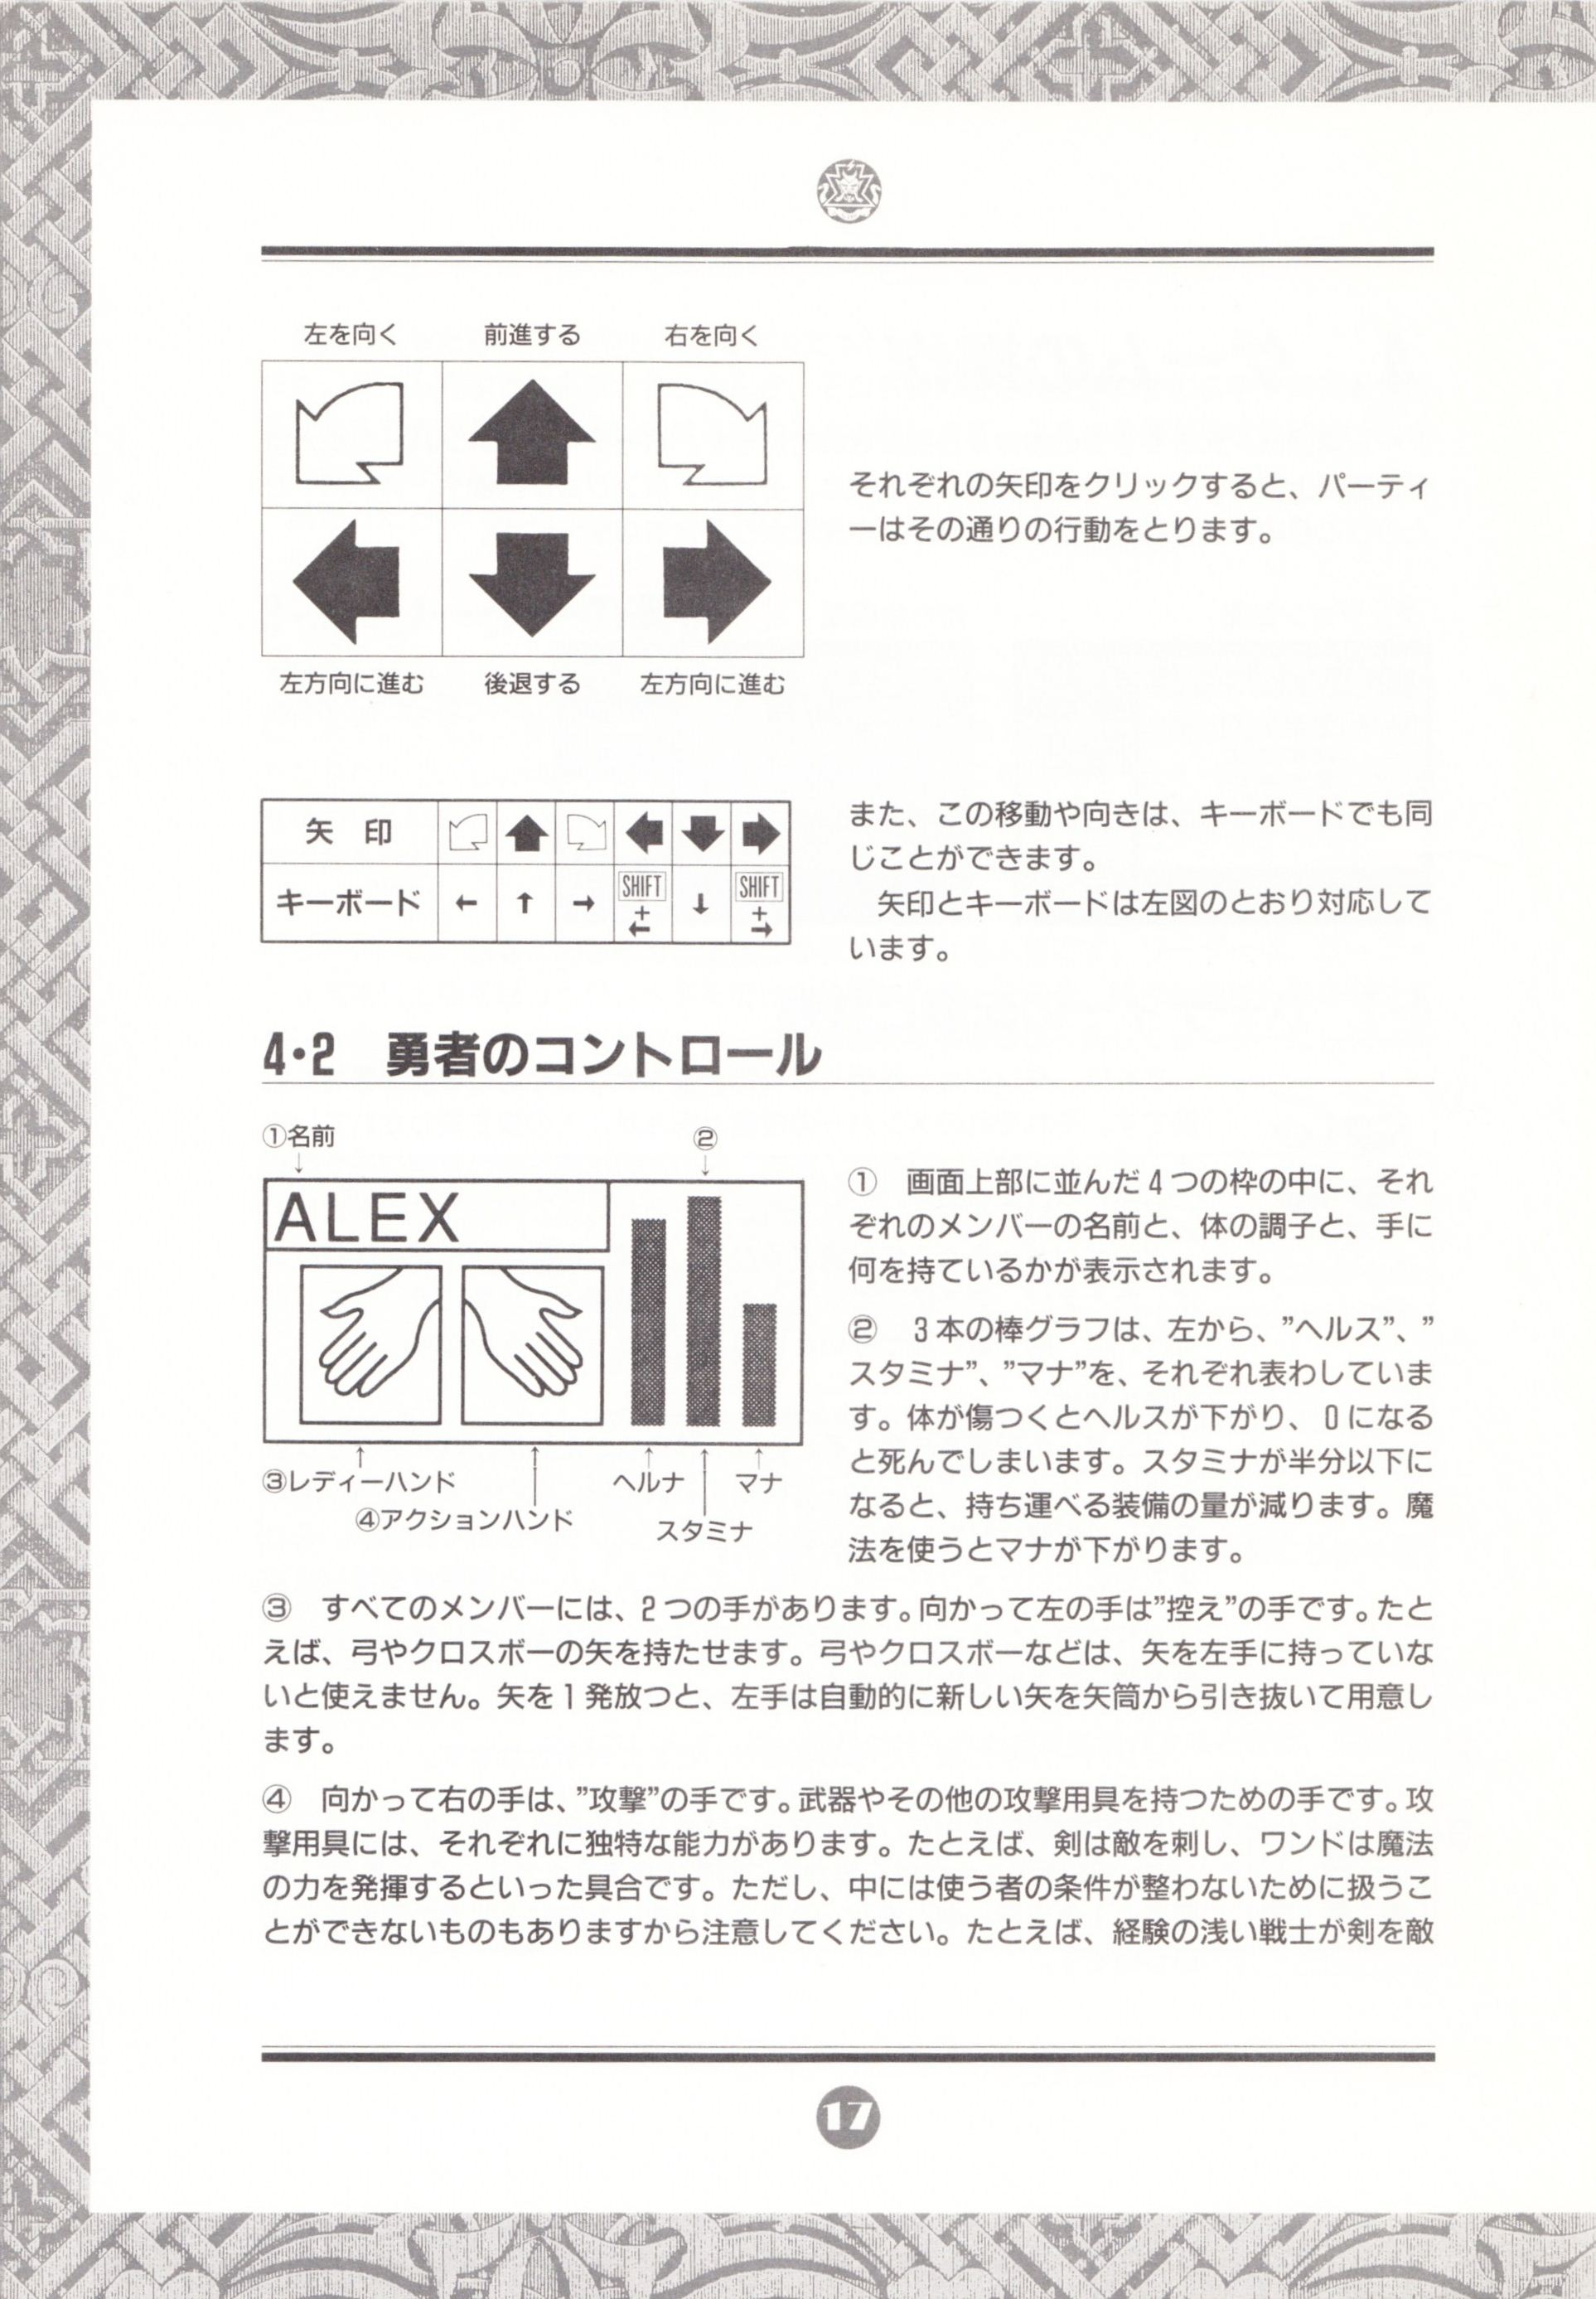 Game - Chaos Strikes Back - JP - FM Towns - An Operation Manual - Page 020 - Scan